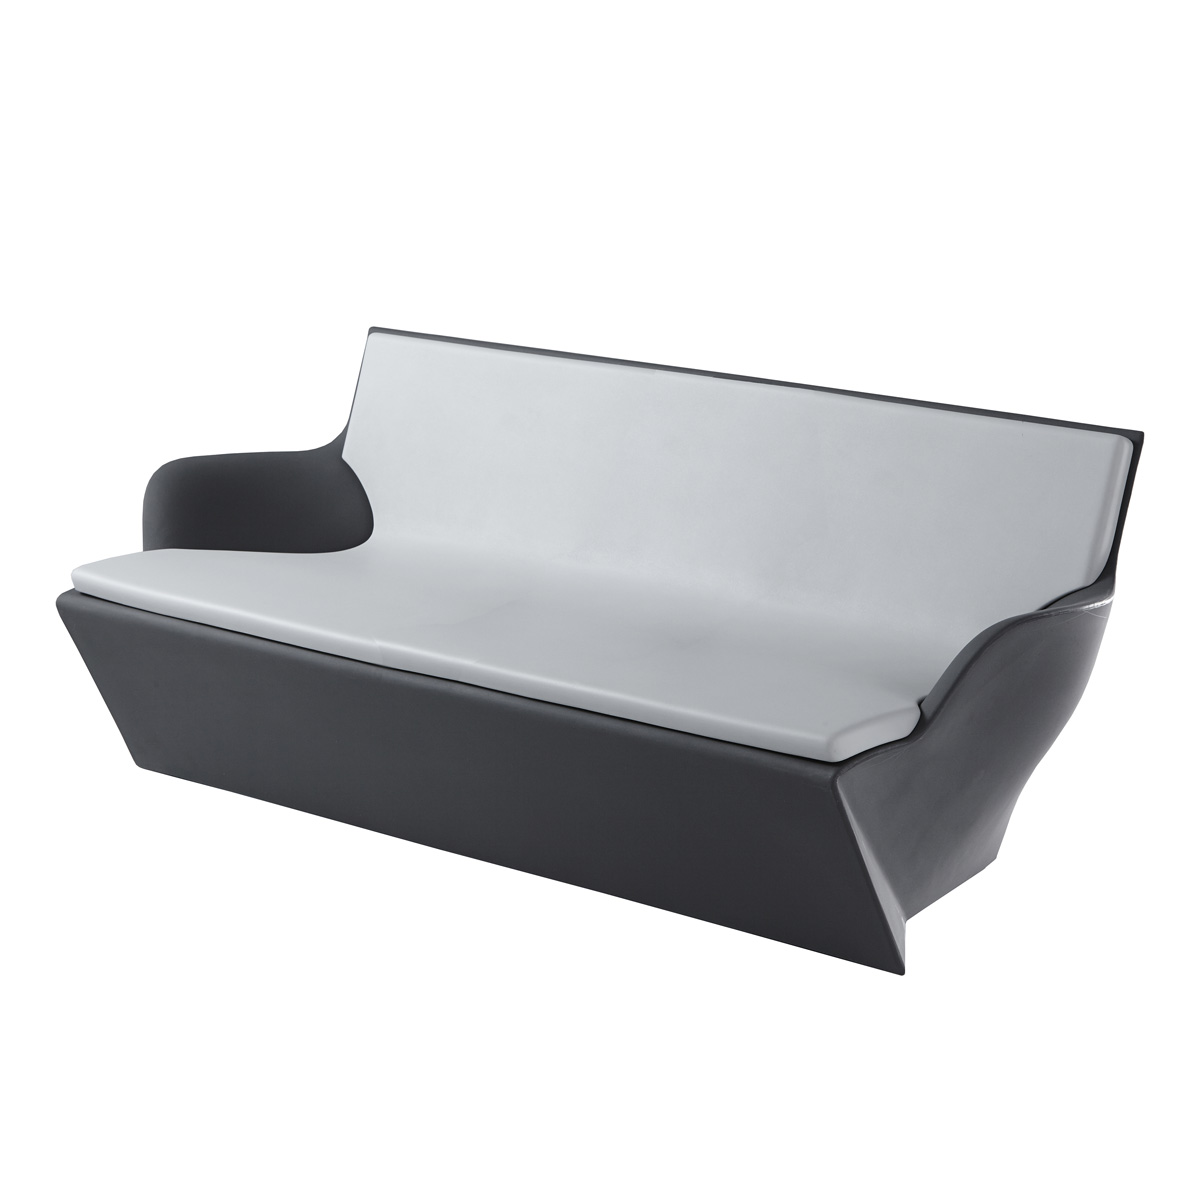 Kami Yon sofa from Slide